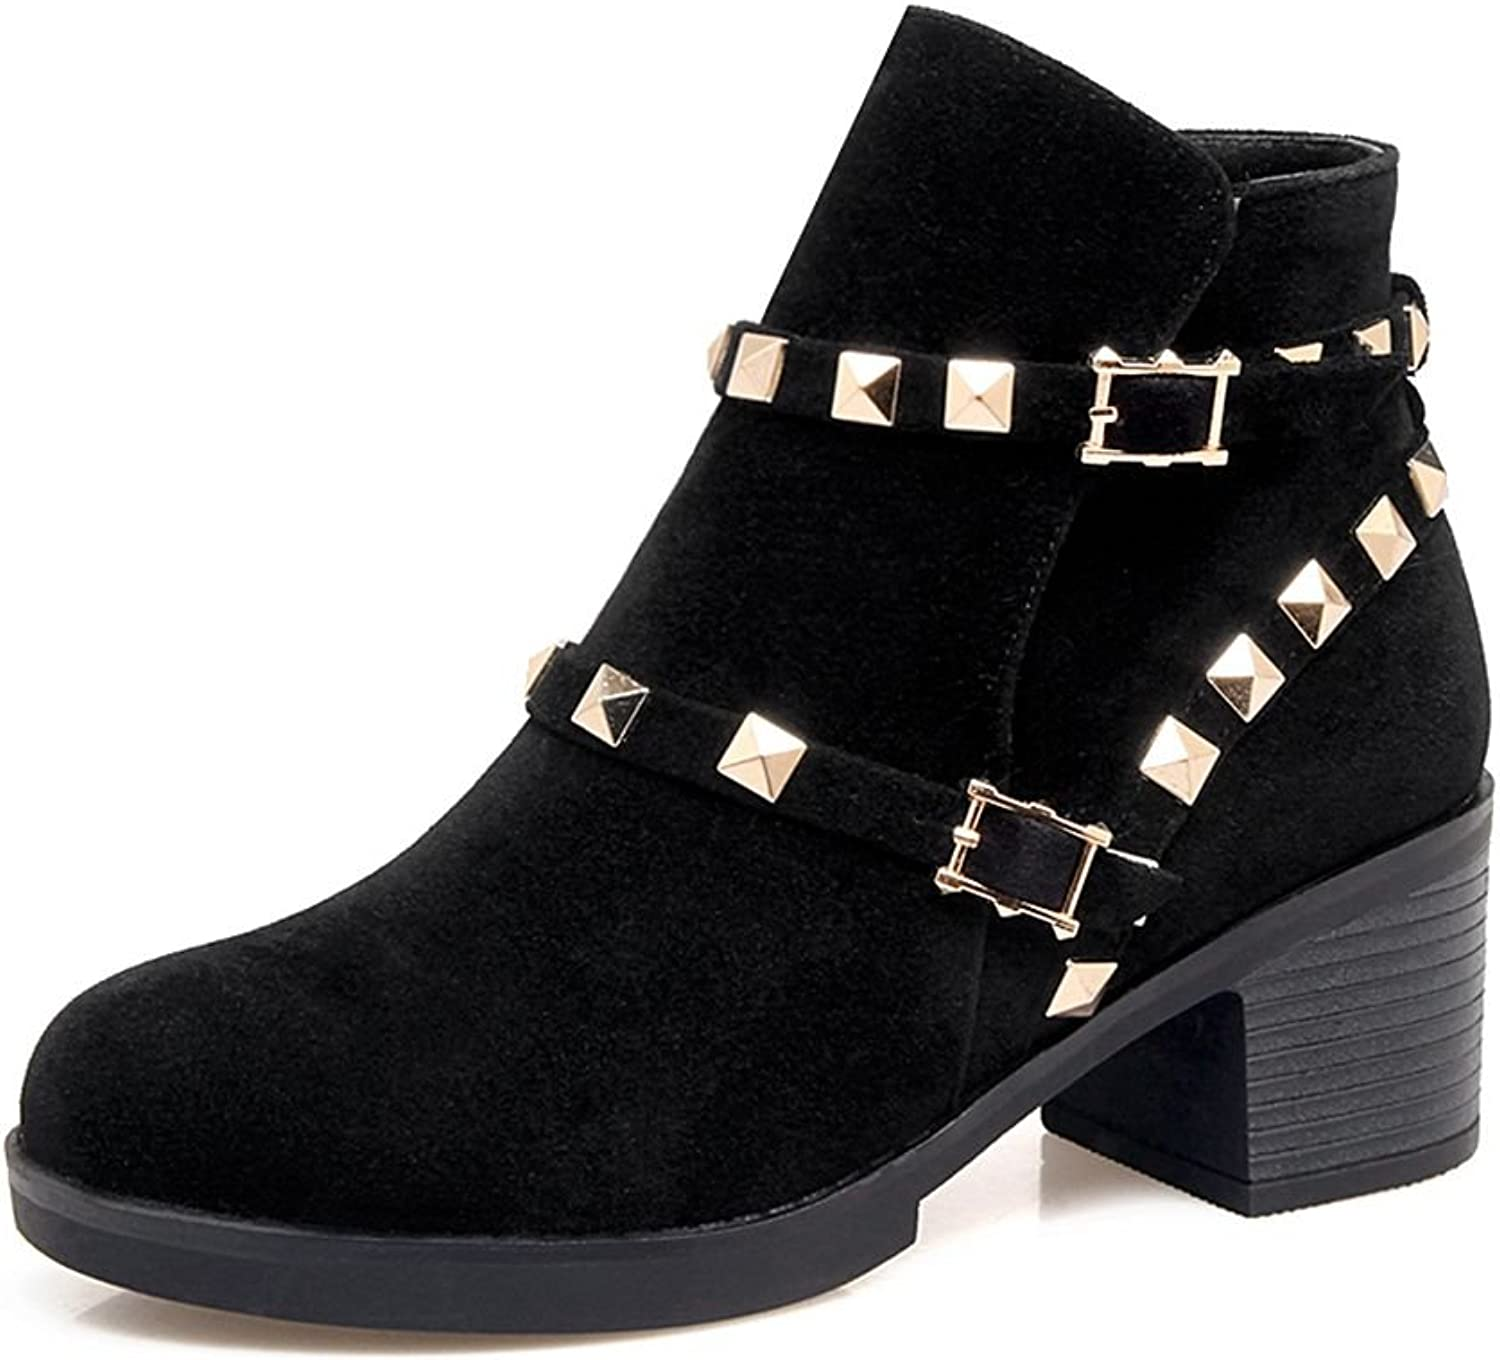 SaraIris Rivet Square Heels Solid Neutral Ankle Boots for Women